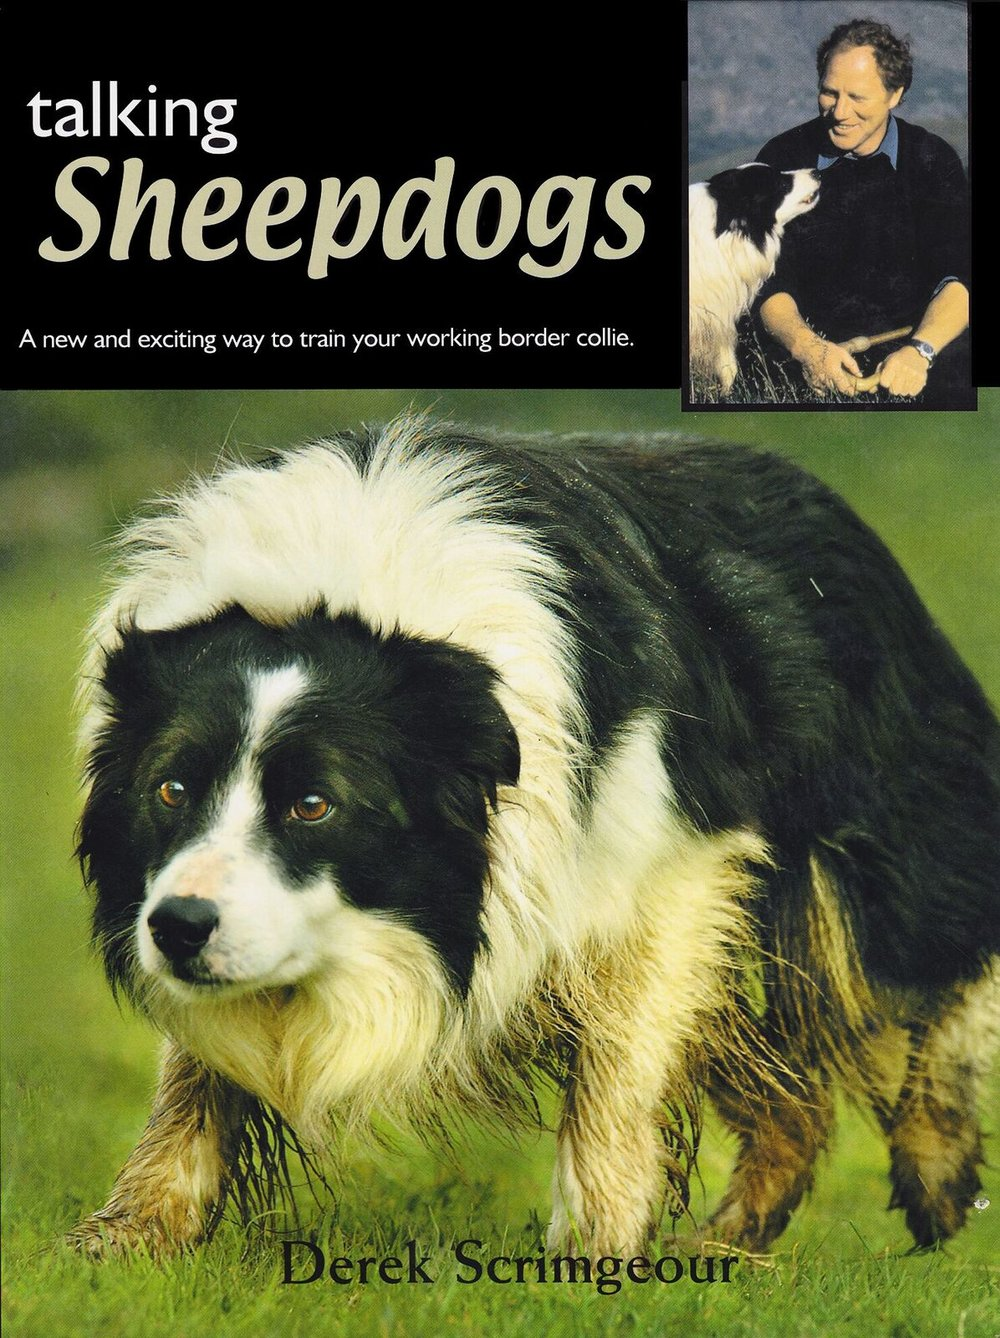 Talking sheep dogs